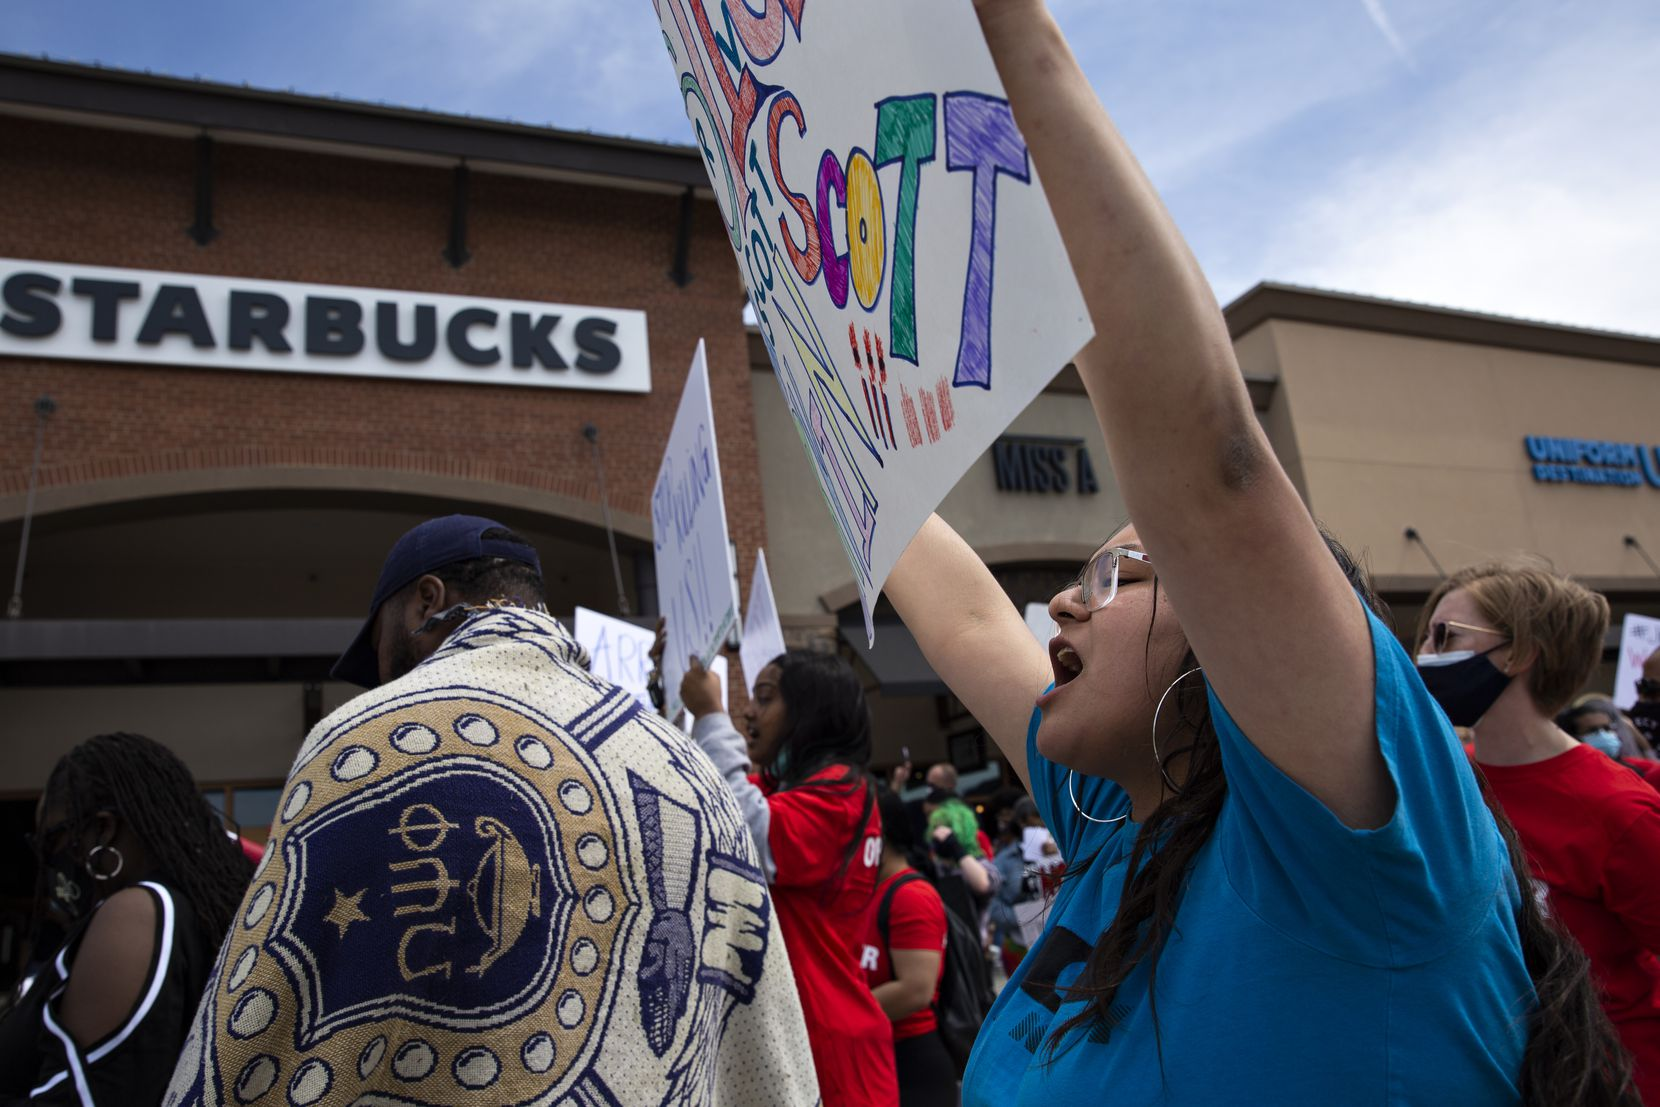 Monica Diaz yells the name of one of her best friends, Marvin Scott III, during a march to the Allen Outlets on Sunday, March 21, 2021. Those who participated in the march demanded justice for Marvin Scott III, who died a week prior while in custody at the Collin County Jail on March 14, 2021. (Shelby Tauber/Special Contributor)